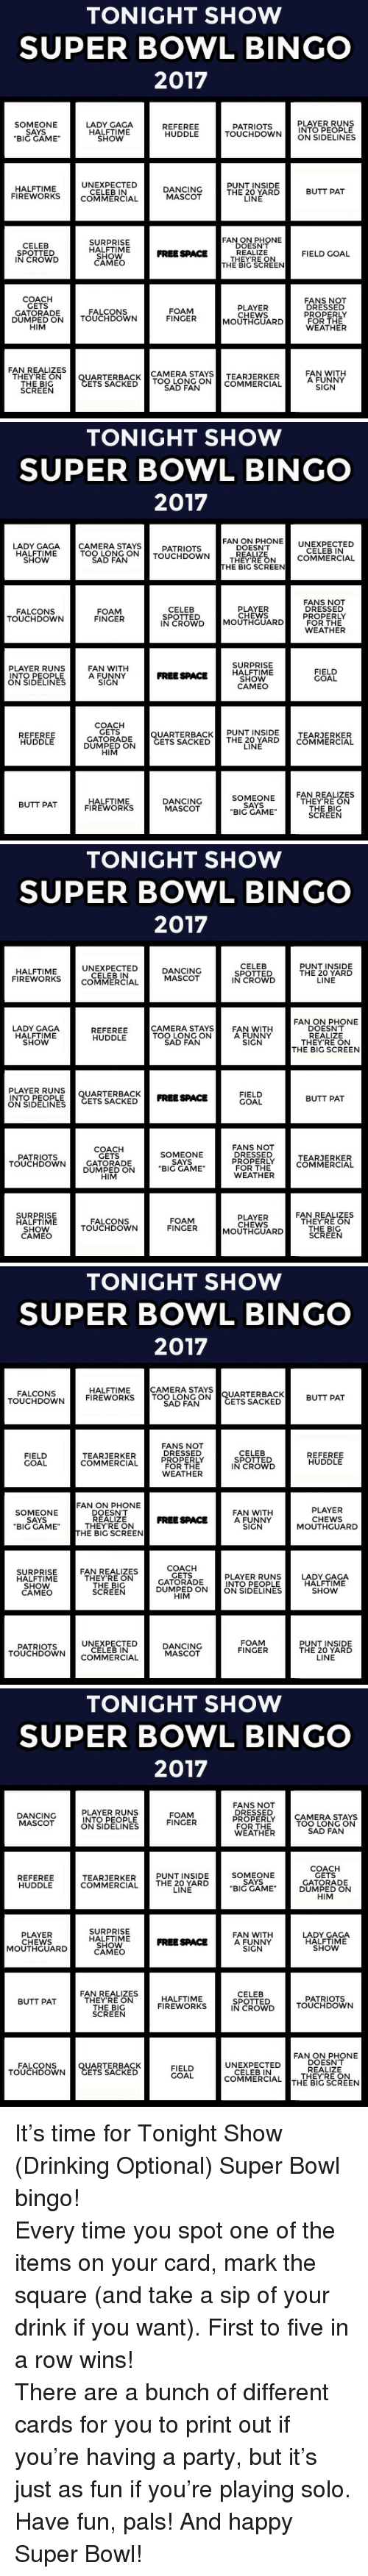 "sidelines: TONIGHT SHOW  SUPER BOWL BINGO  2017  PLAYER RUNS  SOMEONE  SAYS  ""BIG GAME  LADY GAGA  HALFTIME  SHOW  REFEREE  HUDDLE  PATRIOTS  INTO PEOPLE  TOUCHDOWNON SIDELINES  HALFTIME  FIREWORKS  UNEXPECTED  CELEB IN  COMMERCIAL  DANCING  MASCOT  PUNT INSIDE  THE 20 YARD  LINE  BUTT PAT  FANON PHONE  CELEB  SPOTTED  IN CROWD  SURPRISE  HALFTIME  SHOW  CAMEO  DOESNT  REALIZE  THEYRE ON  THE BIG SCREEN  FREE SPACE  FIELD GOAL  COACH  GETS  GATORADE  PLAYER  CHEWS  MOUTHGUARD  FANS NOT  DRESSED  PROPERLY  FOR THE  WEATHER  FOAM  FINGER  FALCONS  DUMPED ON TOUCHDOWN  HIM  FAN REALIZES  THEYRE ON  THE BIG  SCREEN  CAMERA STAYSTEARJERKER  UARTERBACKTOO LONG ONCOMMERCIAL  SAD FAN  FAN WITH  A FUNNY  SIGN  ETS SACKED   TONIGHT SHOW  SUPER BOWL BINGO  2017  LARY TERANG ATRDO WN TMALIEEN COMMERCIAL  FAN ON PHONE UNEXPECTED  GAGACAMERA STAYS  DOESN'T  THEYRE ON  HALFTIME  SHOW  TOO LONG ONTOUCHDOWN  PATRIOTS  CELEB IN  SAD FAN  THE BIG SCREEN  FANS NOT  DRESSED  PROPERLY  FOR THE  WEATHER  FALCONS  TOUCHDOWN  FOAM  FINGER  CELEB  SPOTTED  IN CROWD MOUTHGUARD  PLAYER  CHEWS  SURPRISE  PLAYER RUNS  INTO PEOPLE  ON SIDELINES  FAN WITH  A FUNNY  SIGN  FIELD  GOAL  FREE SPACE HALFTİME  SHOW  CAMEO  COACH  GETS  GATORADE  DUMPED ON  HIM  UARTERBACK PUNT INSIDE  ETS SACKEDT  REFEREE  HUDDLE  TEARJERKER  THE 20 YARDCOMMERCIAL  LINE  SOMEONE  SAYS  ""BIG GAME  FAN REALIZES  THEYRE ON  THE BIG  SCREEN  HALFTIME  FIREWORKS  DANCING  MASCOT  BUTT PAT   TONIGHT SHOW  SUPER BOWL BINGO  2017  HALFTIME  FIREWORKS  UNEXPECTED  CELEB IN  COMMERCIAL  DANCING  MASCOT  CELEB  SPOTTED  IN CROWD  PUNT INSIDE  THE 20 YARD  LINE  FAN ON PHONE  DOESN'T  REALIZE  THEYRE ON  THE BIG SCREEN  LADY GAGA  HALFTIME  SHOW  CAMERA STA  TOO LONG ON  AN WITH  REFEREE  HUDDLE  A FUNNY  SIGN  SAD FAN  PLAYER RUNSQUARTERBACKFREE SPACE  INTO PEOPLE  ON SIDELINES  FIELD  GOAL  BUTT PAT  ETS SACKED  COACH  GETS  GATORADE  DUMPED ON  SOMEONE  SAYS  BIG GAME  FANS NOT  DRESSED  PROPERLY  FOR THE  WEATHER  PATRIOTS  TOUCHDOWN  TEARJERKER  COMMERCIAL  SURPRISE  HALFTIME  SHOW  CAMEO  FOAM  FINGER  PLAYER  CHEWS  MOUTHGUARD  FAN REALIZES  THEYRE ON  THE BIG  SCREEN  FALCONS  TOUCHDOWN   TONIGHT SHOW  SUPER BOWL BINGO  2017  CAMERA STAYS  FALCONS  TOUCHDOWN  HALFTIME  FIREWORKS  TOOL QUARTERBACK  SAD FAN  BUTT PAT  ETS SACKED  FANS NOT  DRESSED  PROPERLY  FOR THE  WEATHER  CELEB  SPOTTED  IN CROWD  FIELD  GOAL  TEARJERKER  COMMERCIAL  REFEREE  HUDDLE  FAN ON PHONE  DOESN'T  SOMEONEROASE FANNYOUTHCUARD  SAYS  BIG GAME  FAN WITH  A FUNNY  SIGN  PLAYER  CHEWS  MOUTHGUARD  FREE SPACE  THEYRE ON  HE BIG SCREEN  SURPRISE  HALFTIME  SHOW  CAMEO  FAN REALIZES  THEYRE ON  THE BIG  SCREEN  PLAYER RUNS  INTO PEOPLE  DUMPED ONON SIDELINES  COACH  GETS  GATORADE  LADY GAGA  HALFTIME  SHOW  HIM  PATRIOTS  TOUCHDOWNCOMMERCIAL  UNEXPECTED  CELEB IN  DANCING  MASCOT  FOAM  FINGER  PUNT INSIDE  THE 20 YARD  LINE   TONIGHT SHOW  SUPER BOWL BINGO  2017  PLAYER RUNS  INTO PEOPLE  ON SIDELINES  FANS NOT  DRESSED  PROPERLY  FOR THE  WEATHER  DANCING  MASCOT  FOAM  FINGER  CAMERA STAYS  TOO LONG ON  SAD FAN  SOMEONE  SAYS  ""BIG GAME  COACH  GETS  GATORADE  DUMPED ON  HIM  PUNT INSIDE  REFEREE  HUDDLE  TEARJERKER  COMMERCIAL THE 20 YARD  LINE  PLAYER  CHEWS  MOUTHGUARD  SURPRISE  HALFTIME  SHOW  CAMEO  FAN WITH  A FUNNY  SIGN  LADY GAGA  HALFTIME  SHOW  FREE SPACE  FAN REALIZES  THEYRE ON  THE BIG  SCREEN  CELEB  SPOTTED  IN CROWD  HALFTIME  FIREWORKS  PATRIOTS  TOUCHDOWN  BUTT PAT  FAN ON PHONE  DOESN'T  REALIZE  THEYRE ON  UNEXPECTED  FALCONS  TOUCHDOWN  UARTERBACK  ETS SACKED  FIELD  GOAL  CELEB IN  COMMERCI  EBİCSCREEN <p>It&rsquo;s time for Tonight Show (Drinking Optional) Super Bowl bingo!</p><p>Every time you spot one of the items on your card, mark the square (and take a sip of your drink if you want). First to five in a row wins!</p><p>There are a bunch of different cards for you to print out if you're having a party, but it's just as fun if you're playing solo.</p><p>Have fun, pals! And happy Super Bowl!</p>"